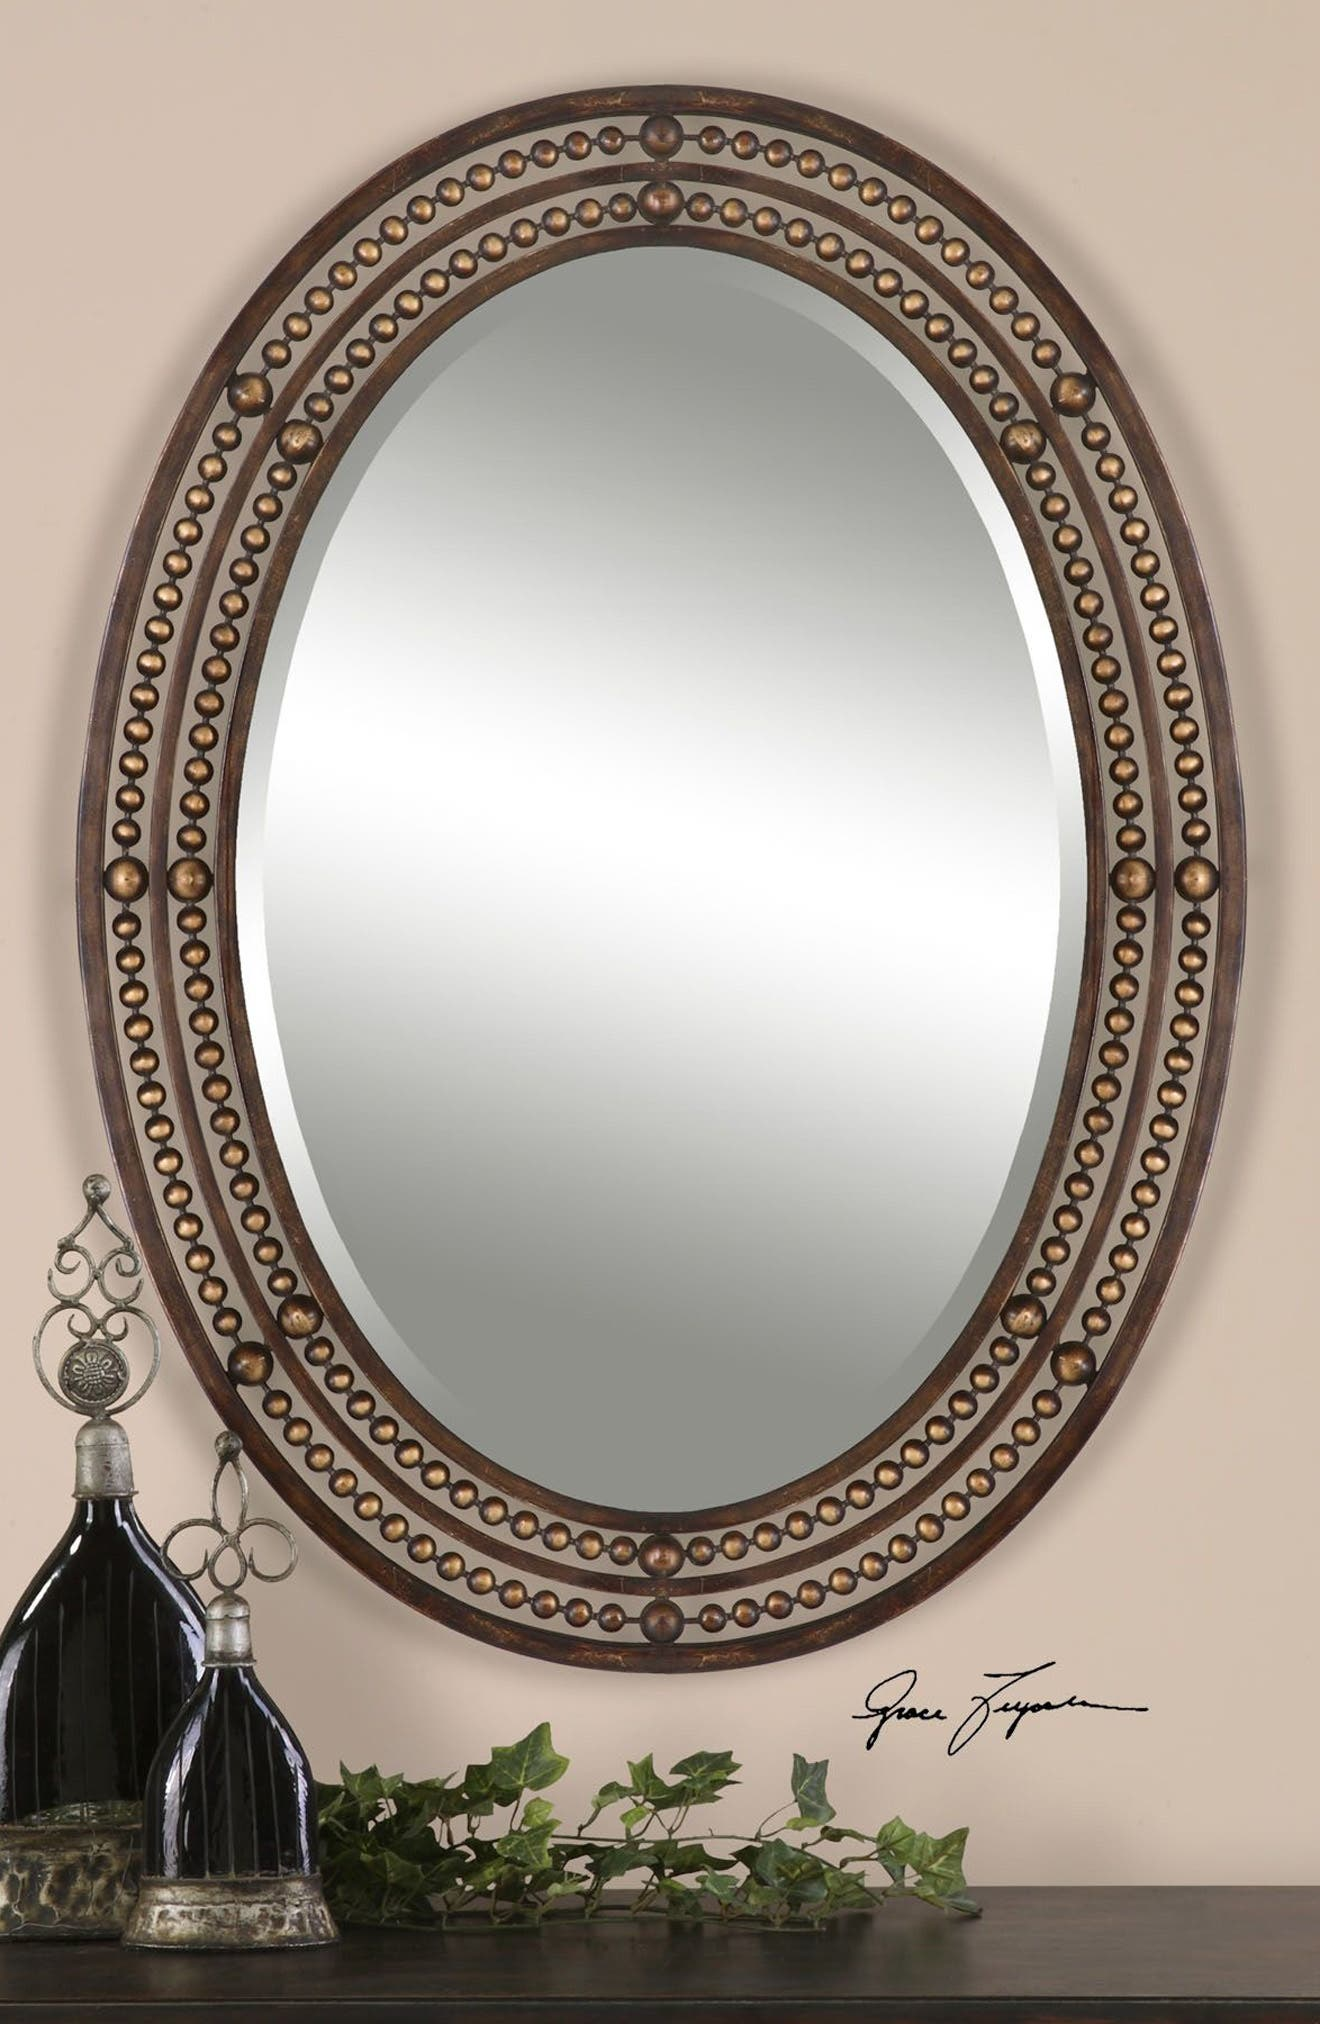 'Matney' Distressed Bronze Oval Wall Mirror,                             Alternate thumbnail 3, color,                             200